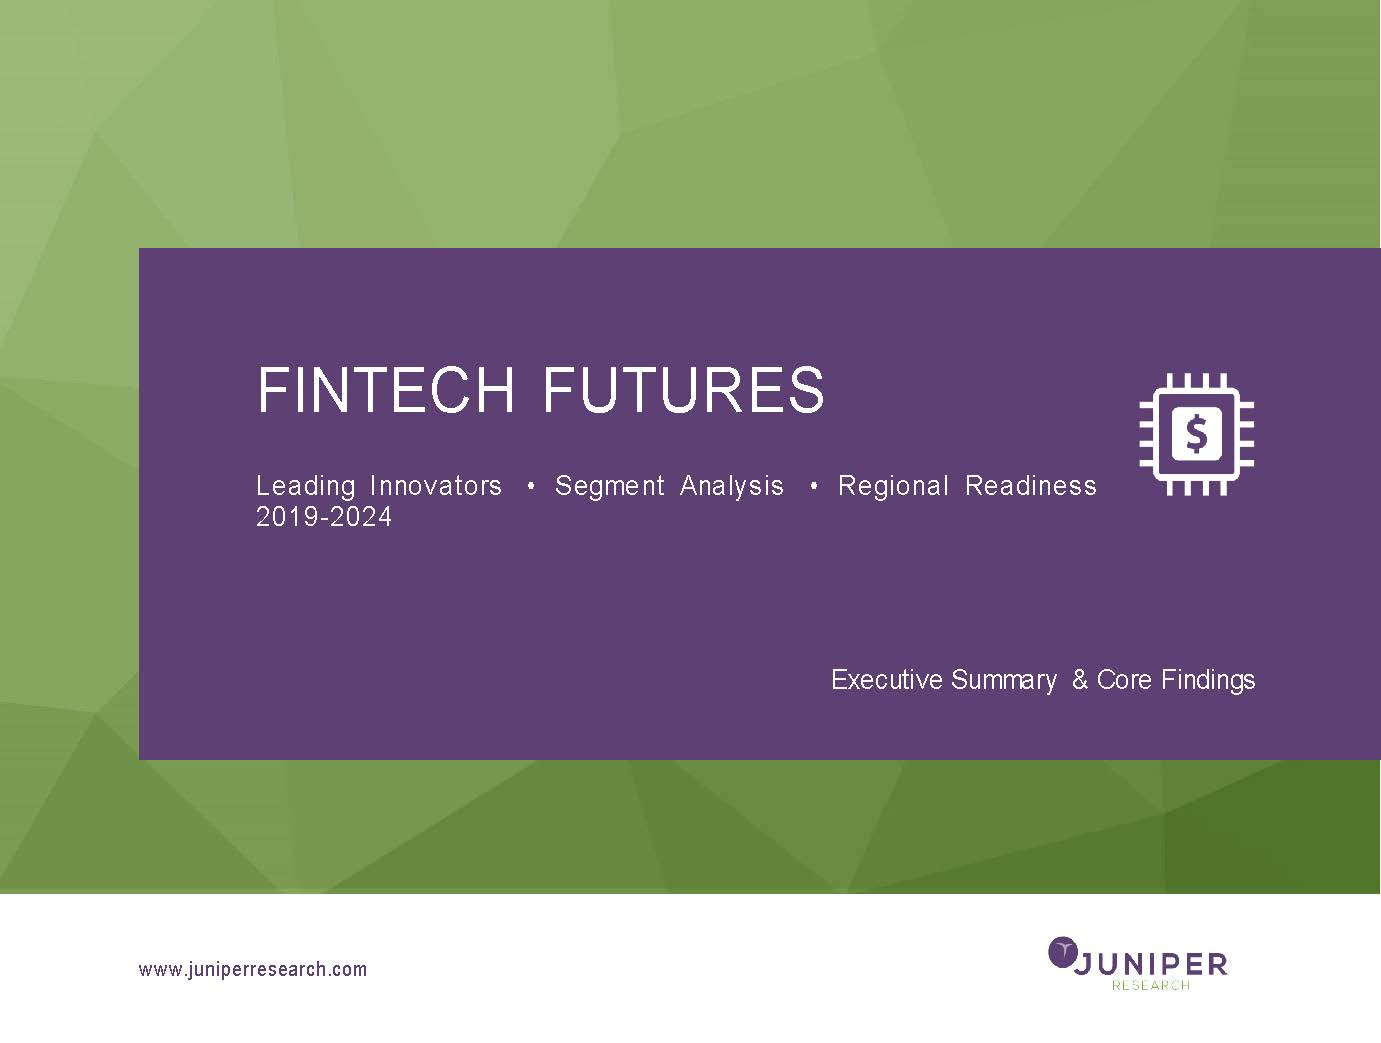 Fintech Futures - Executive Summary & Core Findings 2019-2024